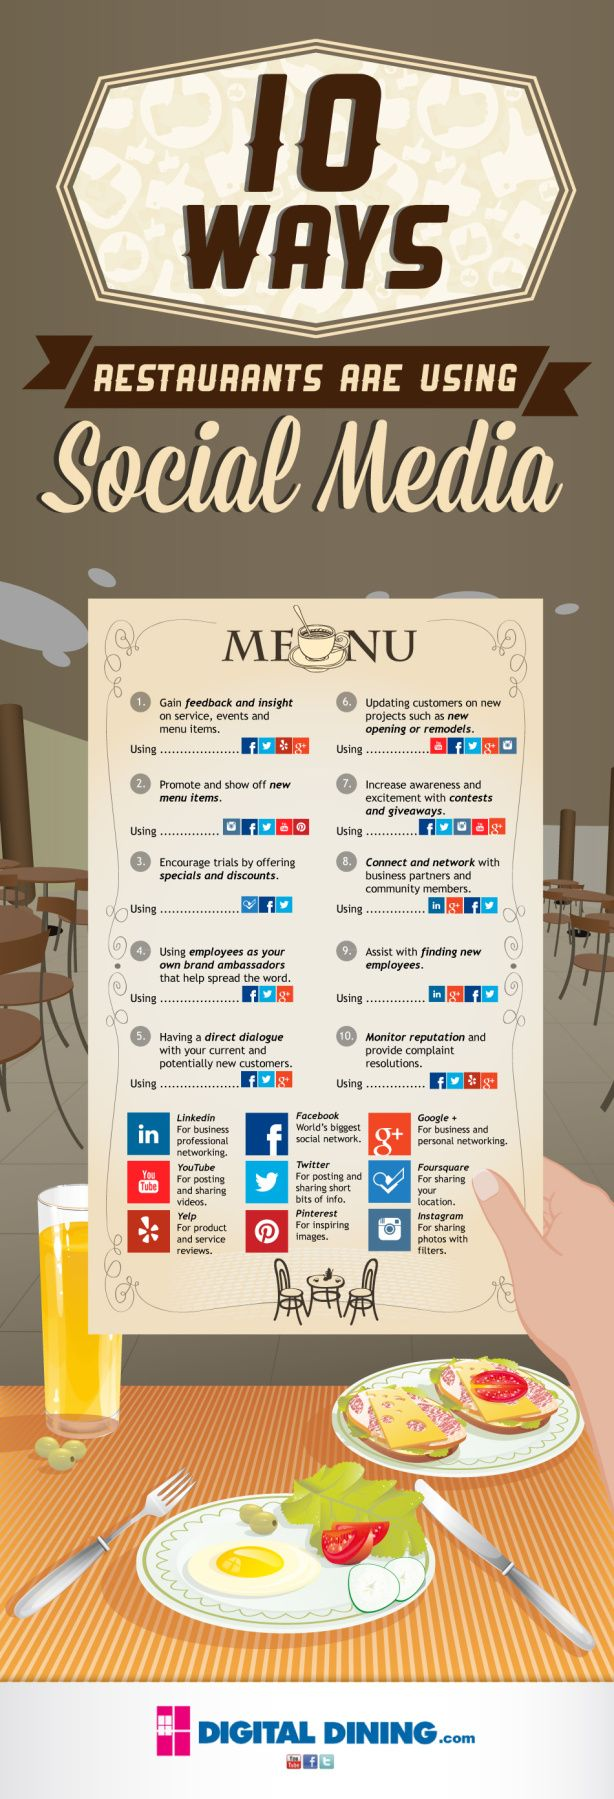 RESTAURANTS #INFOGRAPHIC for Social Media - for all the small businesses out there!